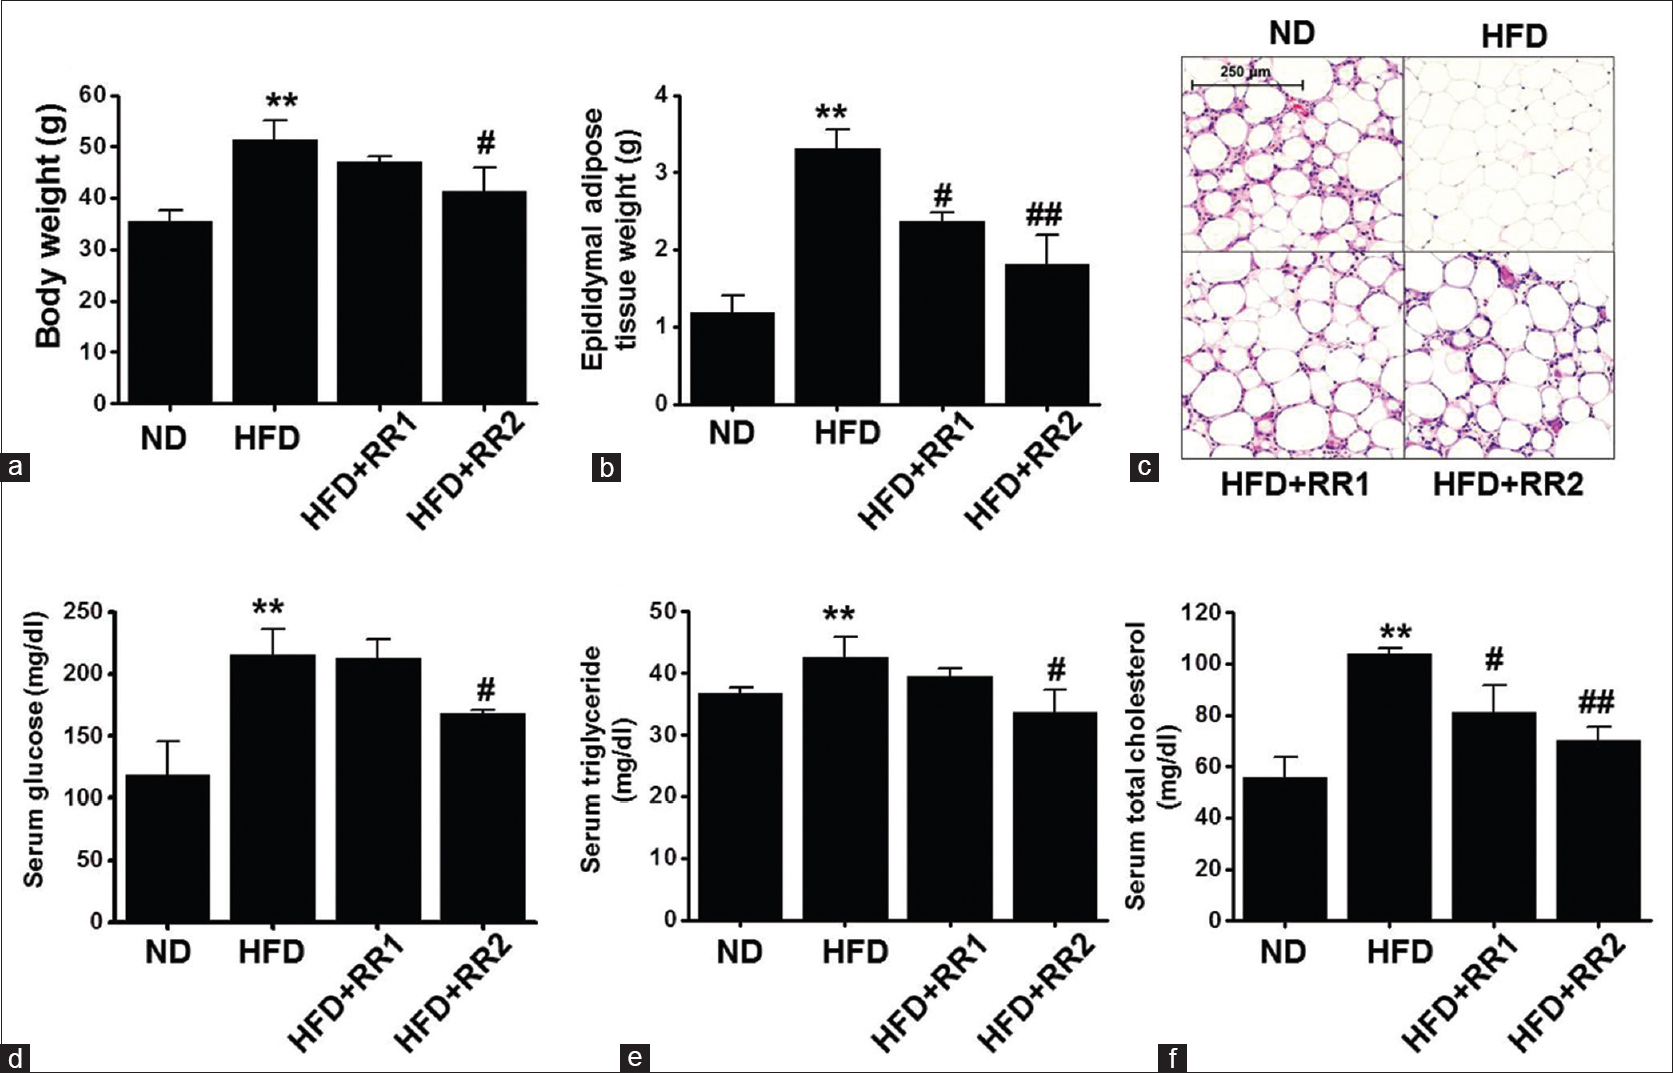 Figure 1: <i>Rehmanniae</i> radix prevents high-fat diet-induced obesity and ameliorates serum biochemical parameters. C57BL/6 mice were fed a normal diet or high-fat diet for 6 weeks, and a low (<i>Rehmanniae</i> radix 1, 250 μg/mL) or high (<i>Rehmanniae</i> radix 2, 500 μg/mL) dose of <i>Rehmanniae</i> radix was administered to the high-fat diet-fed mice for an additional 8 weeks. (a) Final body weight. (b) Final epididymal adipose tissue weight. (c) H and E staining (scale bar, 250 μm). (d) Serum glucose level. (e) Serum triglyceride level. (f) Serum total cholesterol level. The data are presented as the mean ± standard errors of means for 6 mice. **<i>P</i> < 0.01 vs. normal diet fed mice. <sup>#</sup><i>P</i> < 0.05, <sup>##</sup><i>P</i> < 0.01 versus high-fat diet-fed mice alone